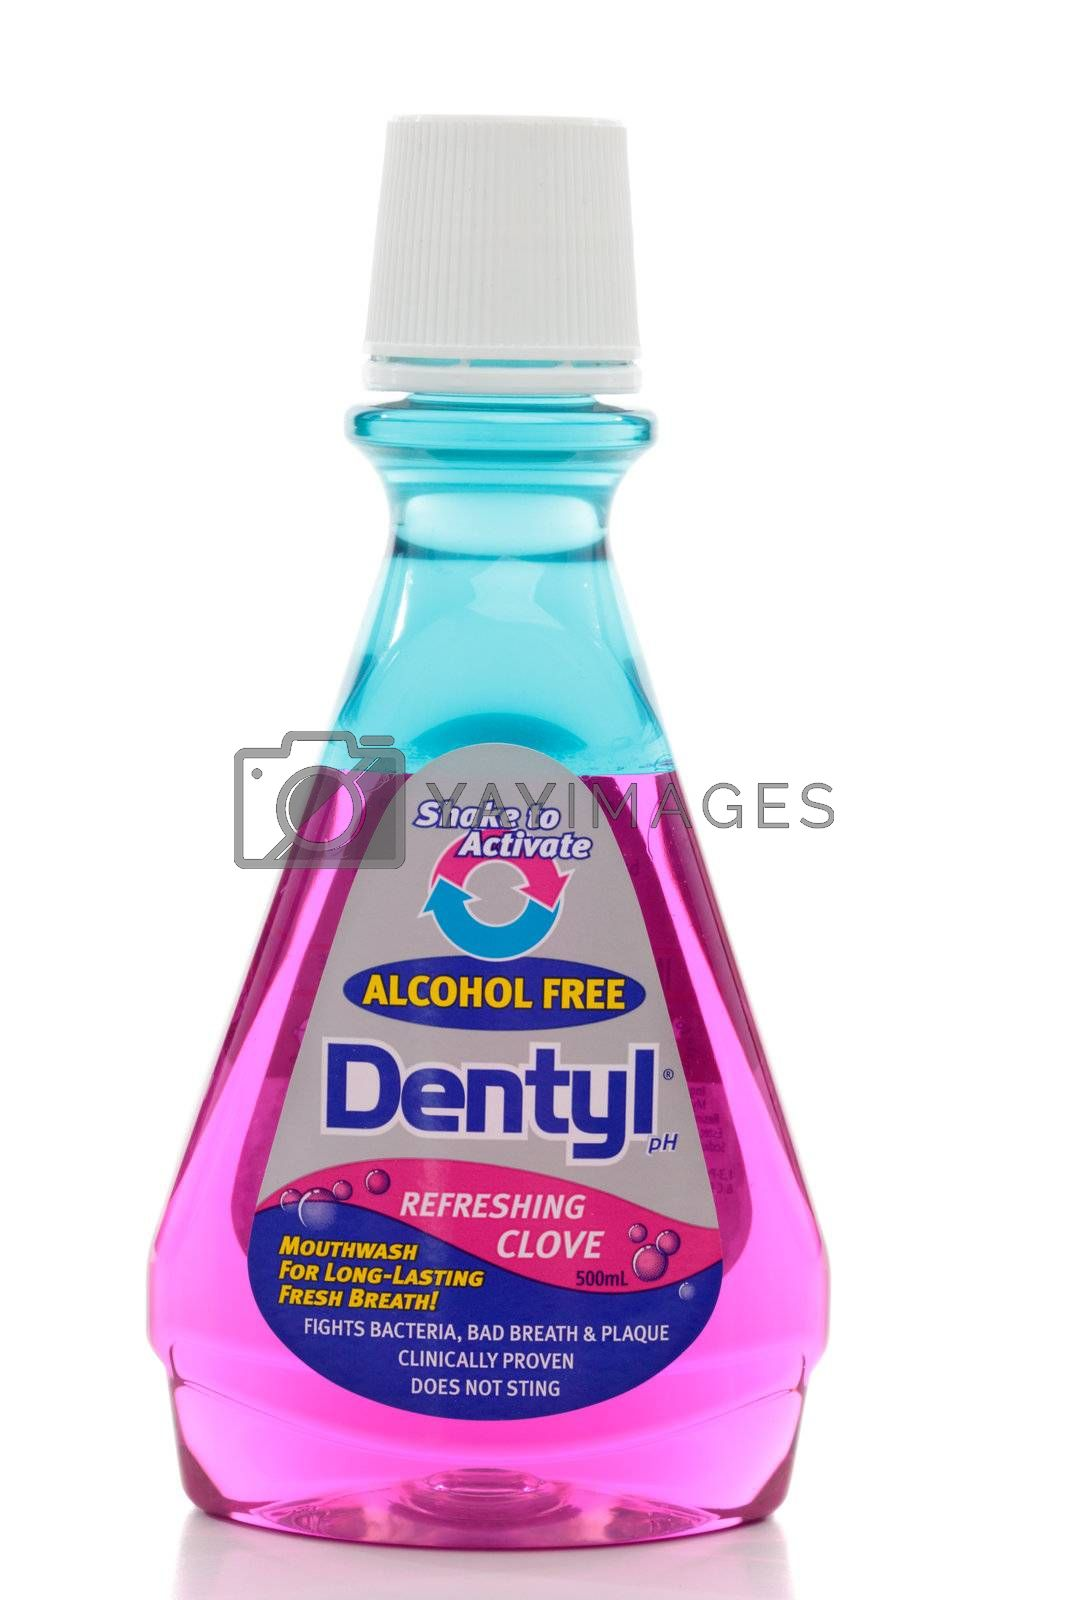 Dentyl mouth wash.  When mixed  the formulation creates an electrostatic reaction to  attract, lift and remove the bacteria and debris which cause bad breath and plaque.